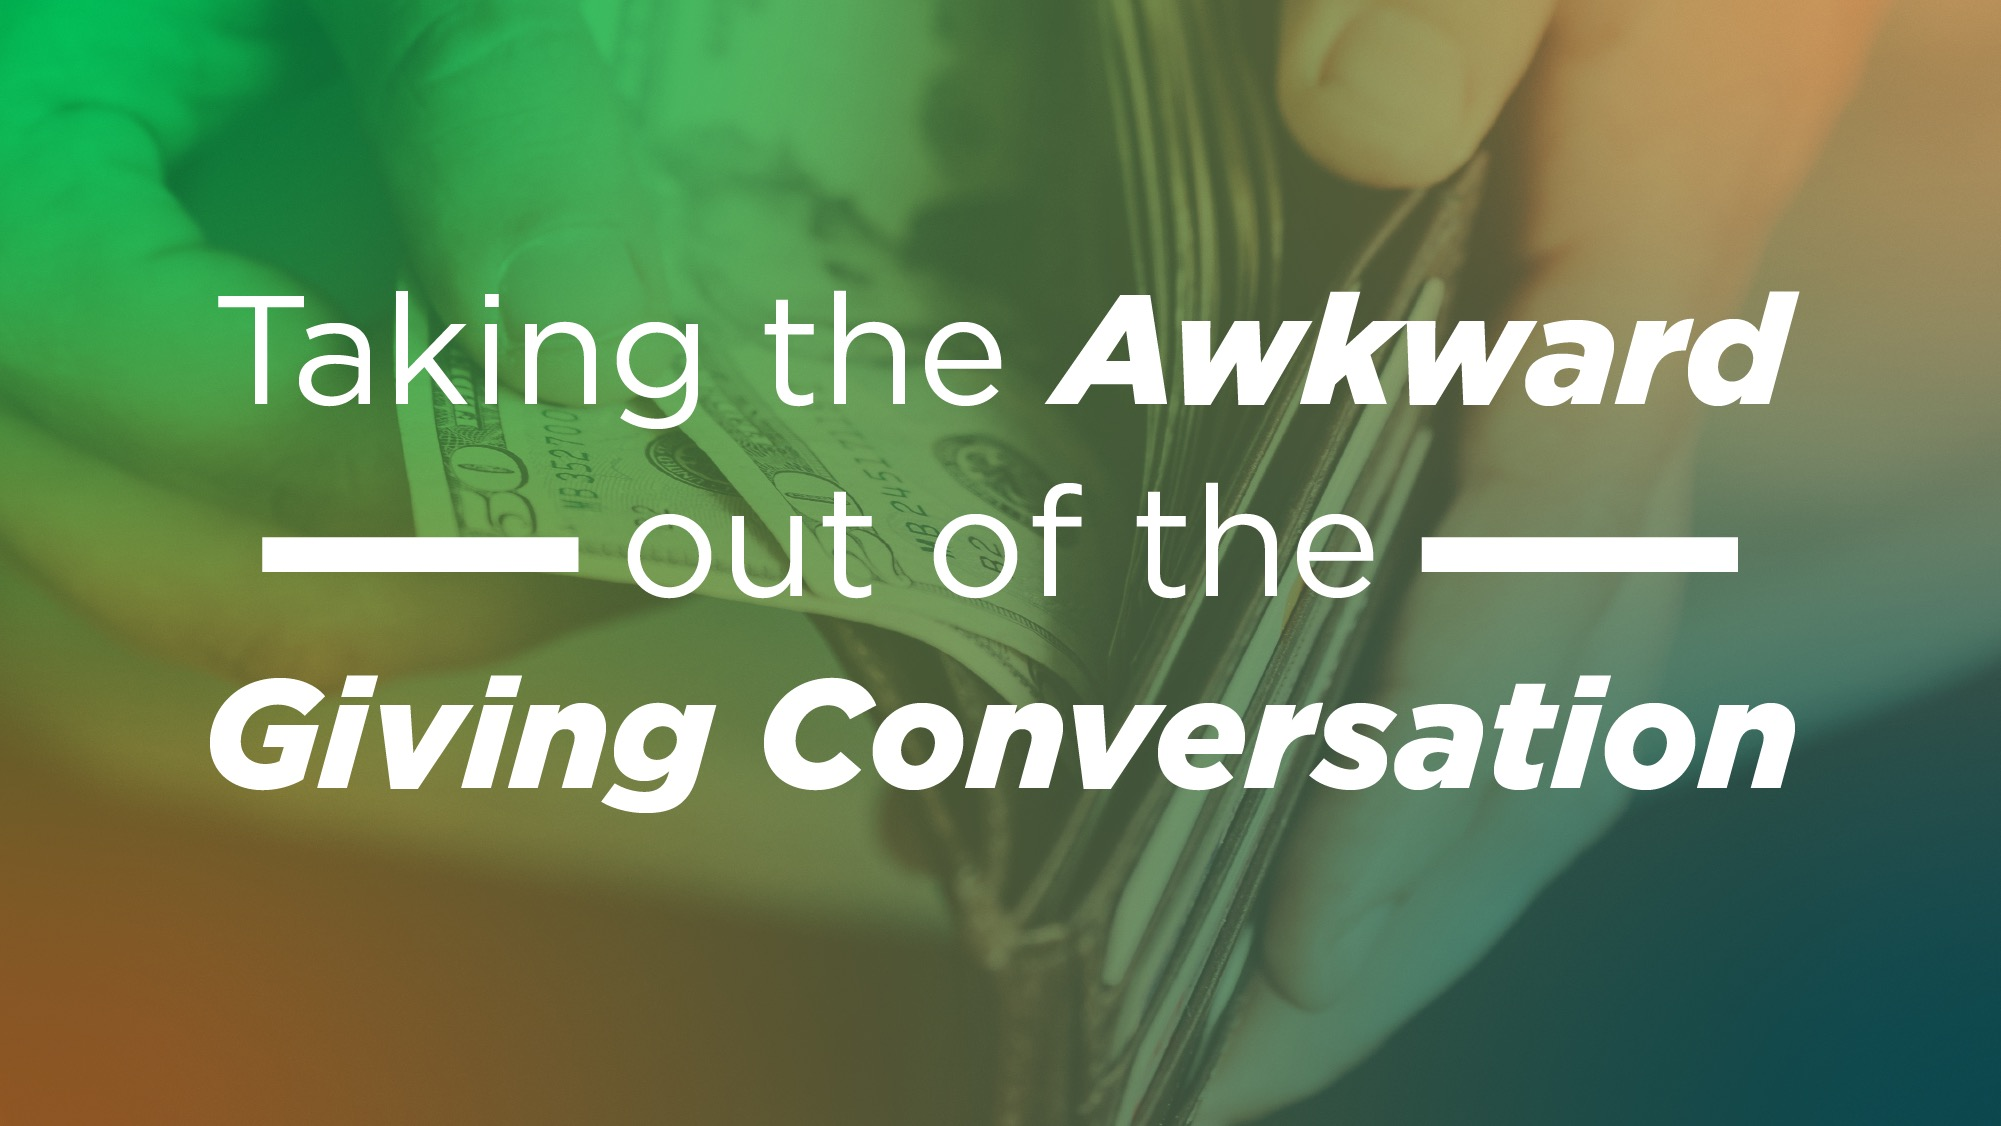 Take The Awkward Out Of the Giving Conversation